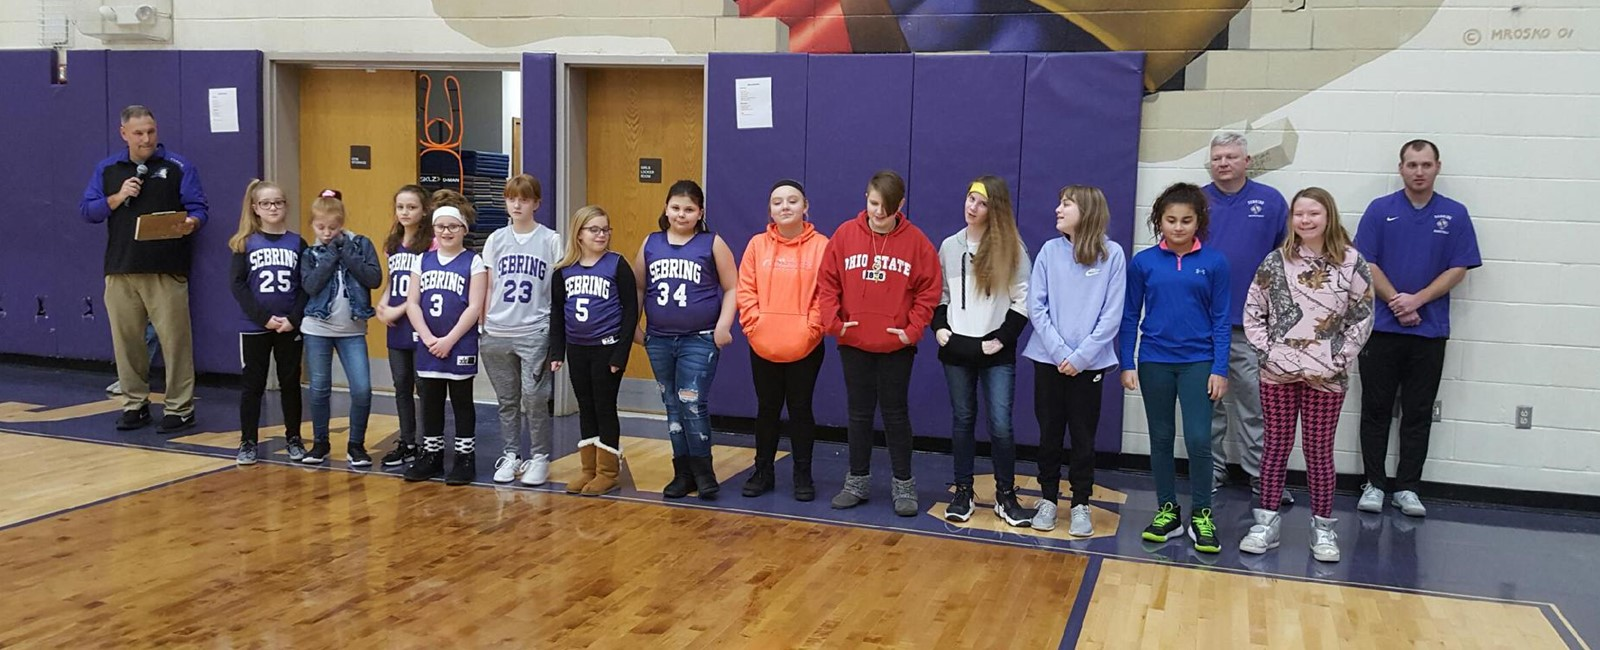 The elementary girls basketball players were recognized during a high school girls basketball game.